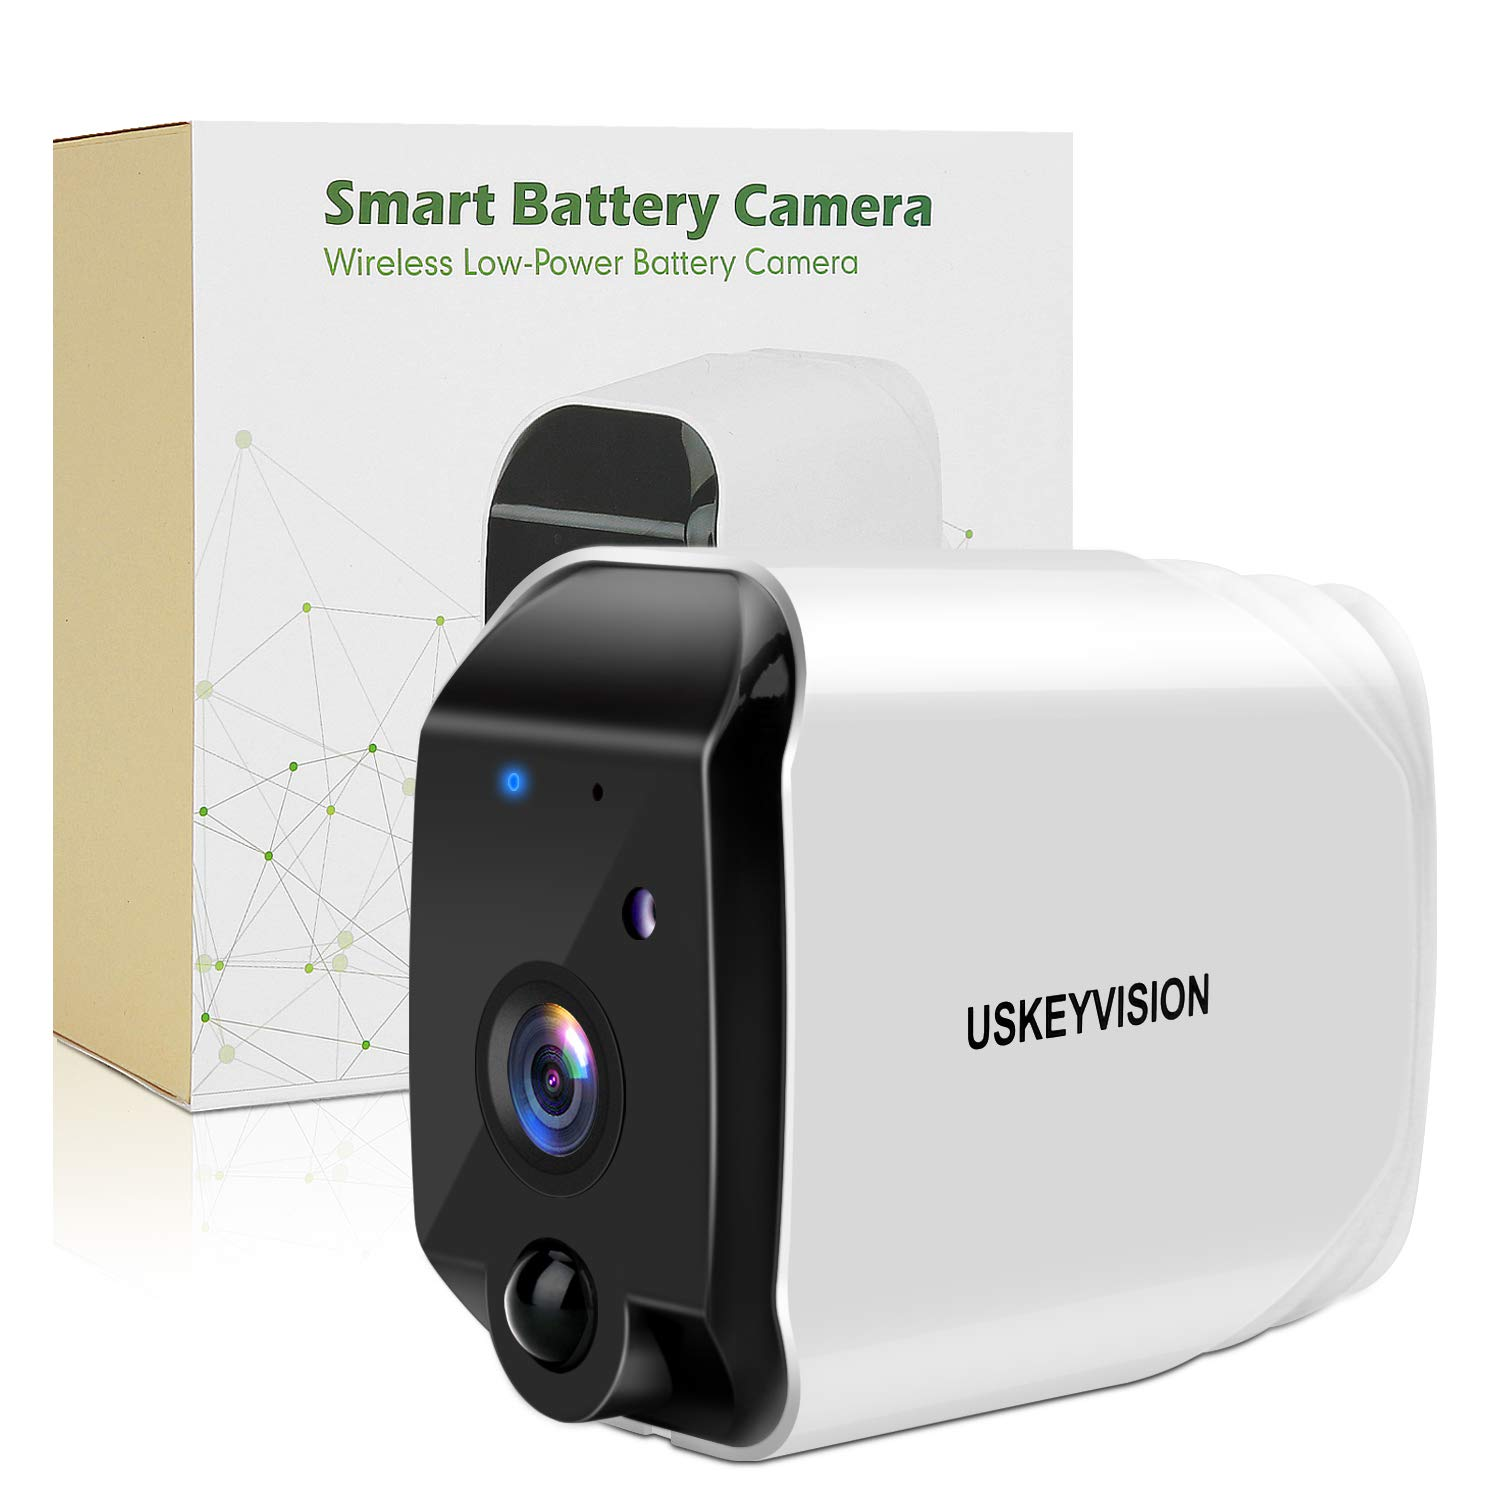 Wireless Battery Powered Outdoor Camera,Battery Security Camera, Rechargeable Wireless Security Camera, Wirefree Indoor/Outdoor Security Camera,with 16 GB SD Card,1080P Wireless Camera (USKEYVISION)